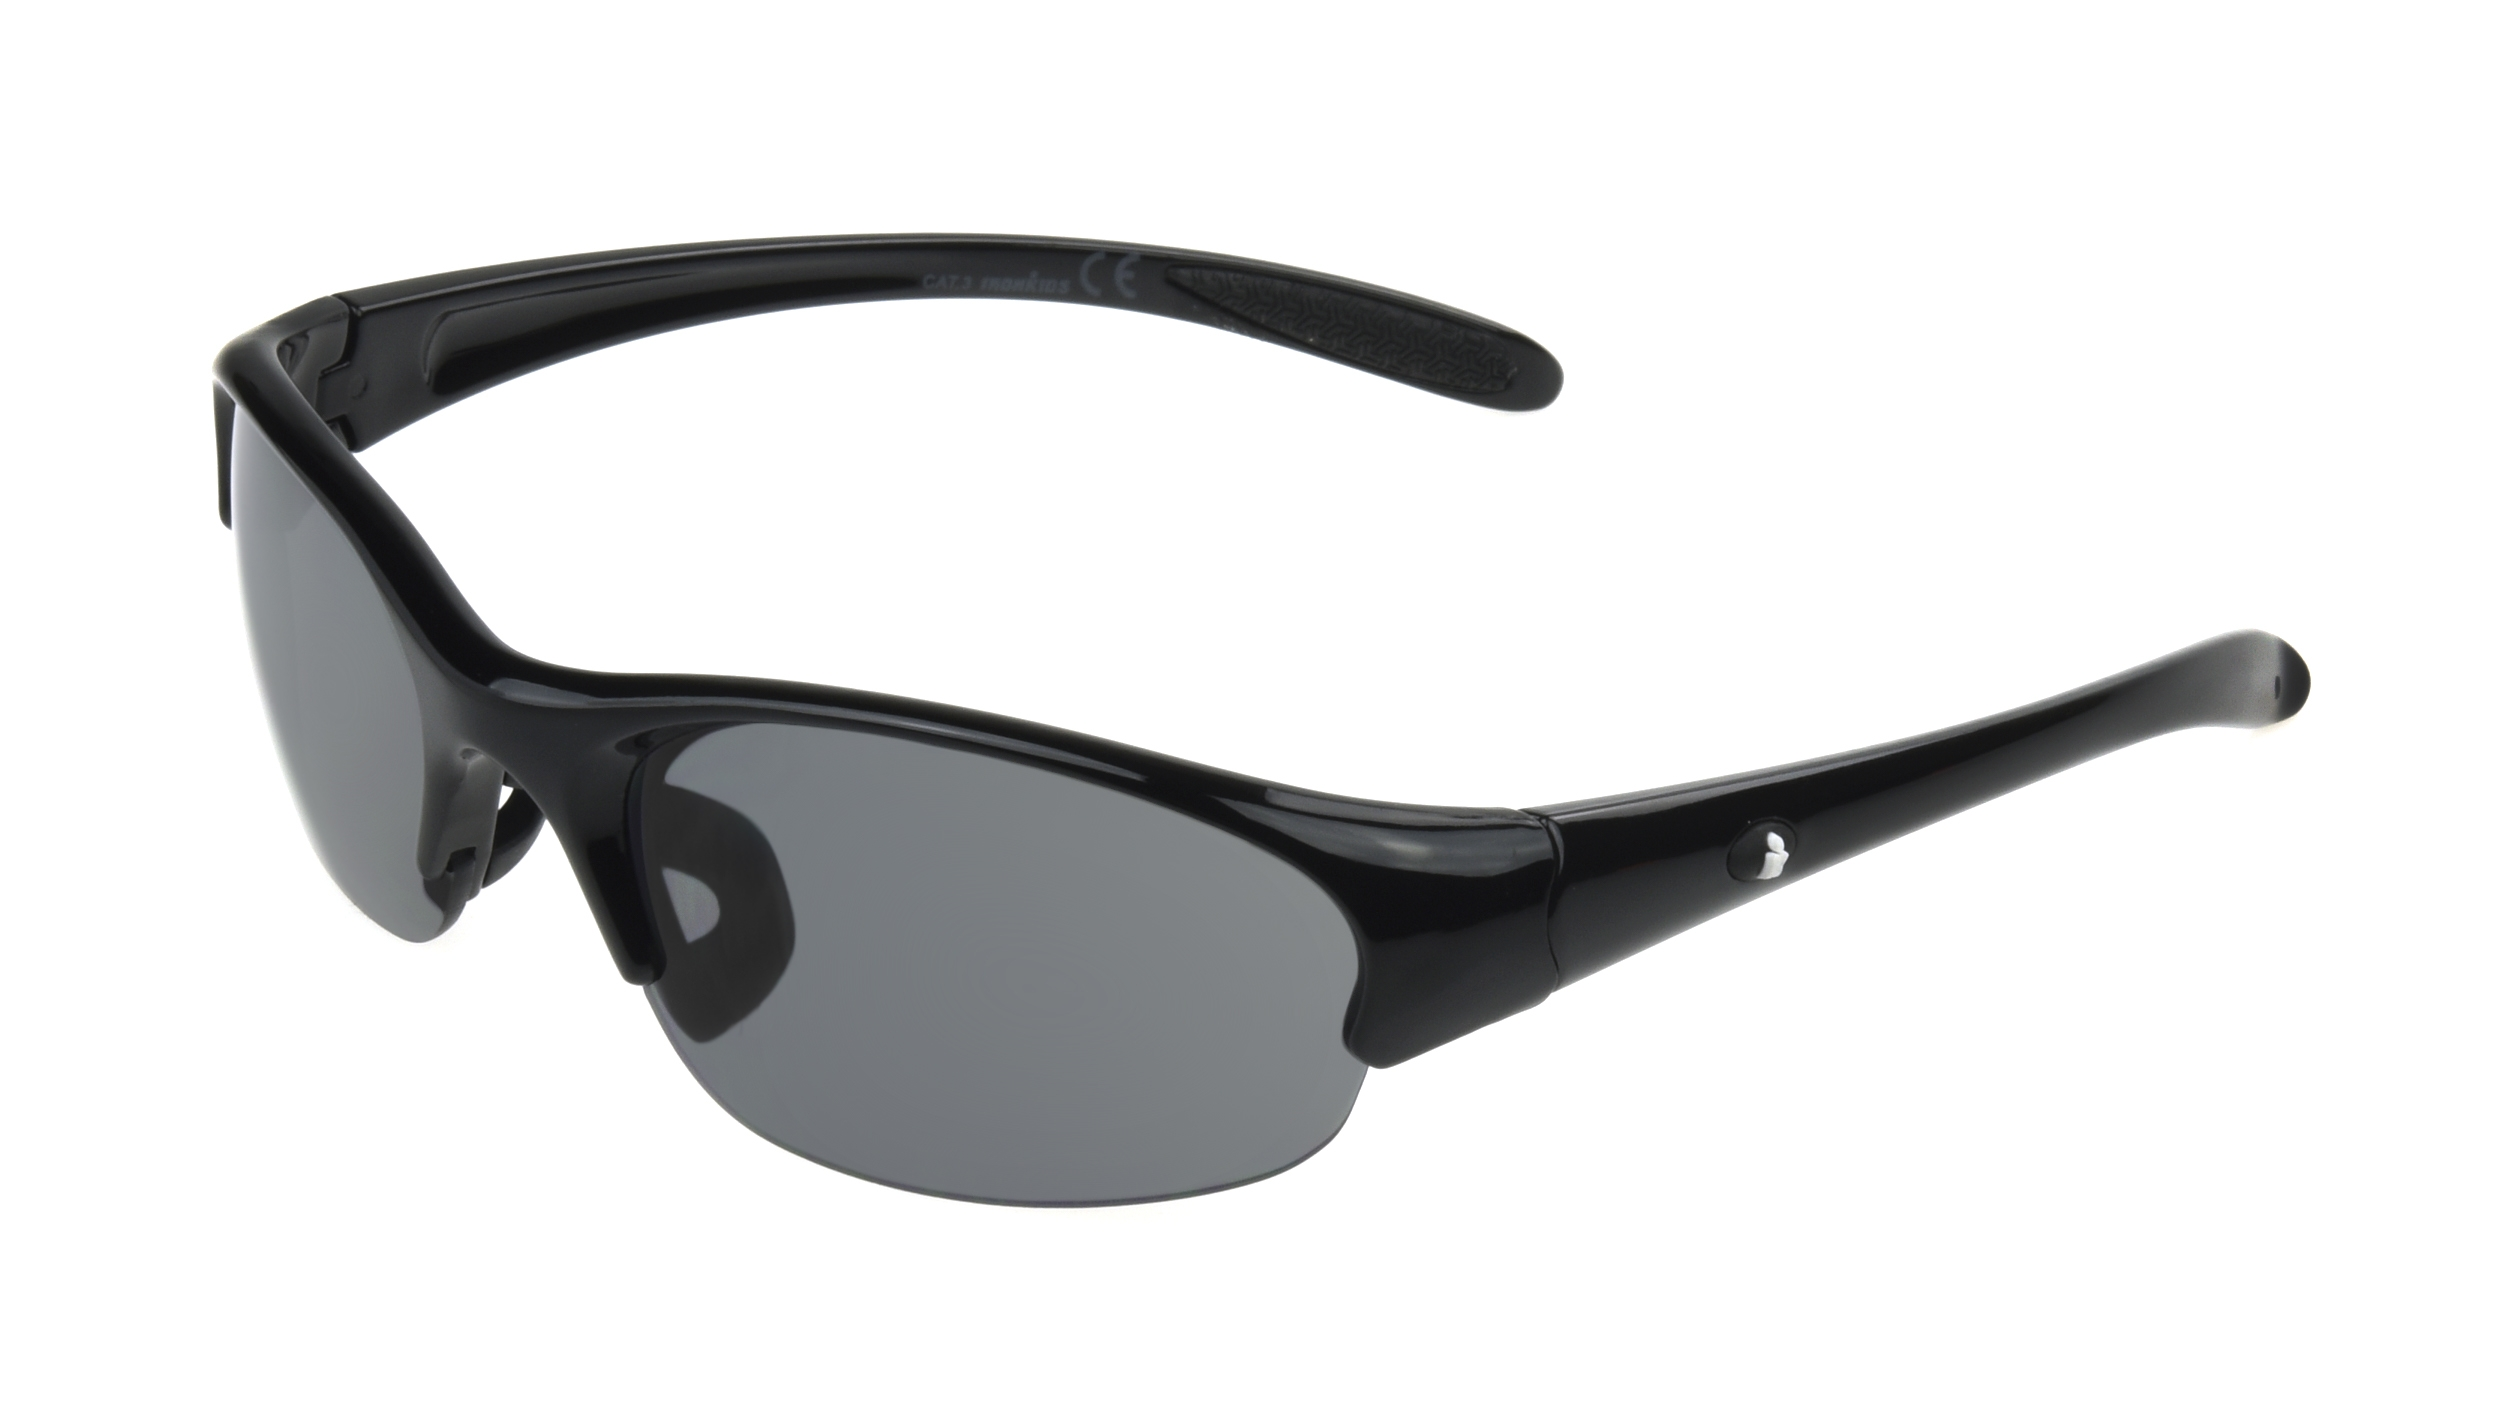 IRONKIDS Foster Grant-9 Sunglasses